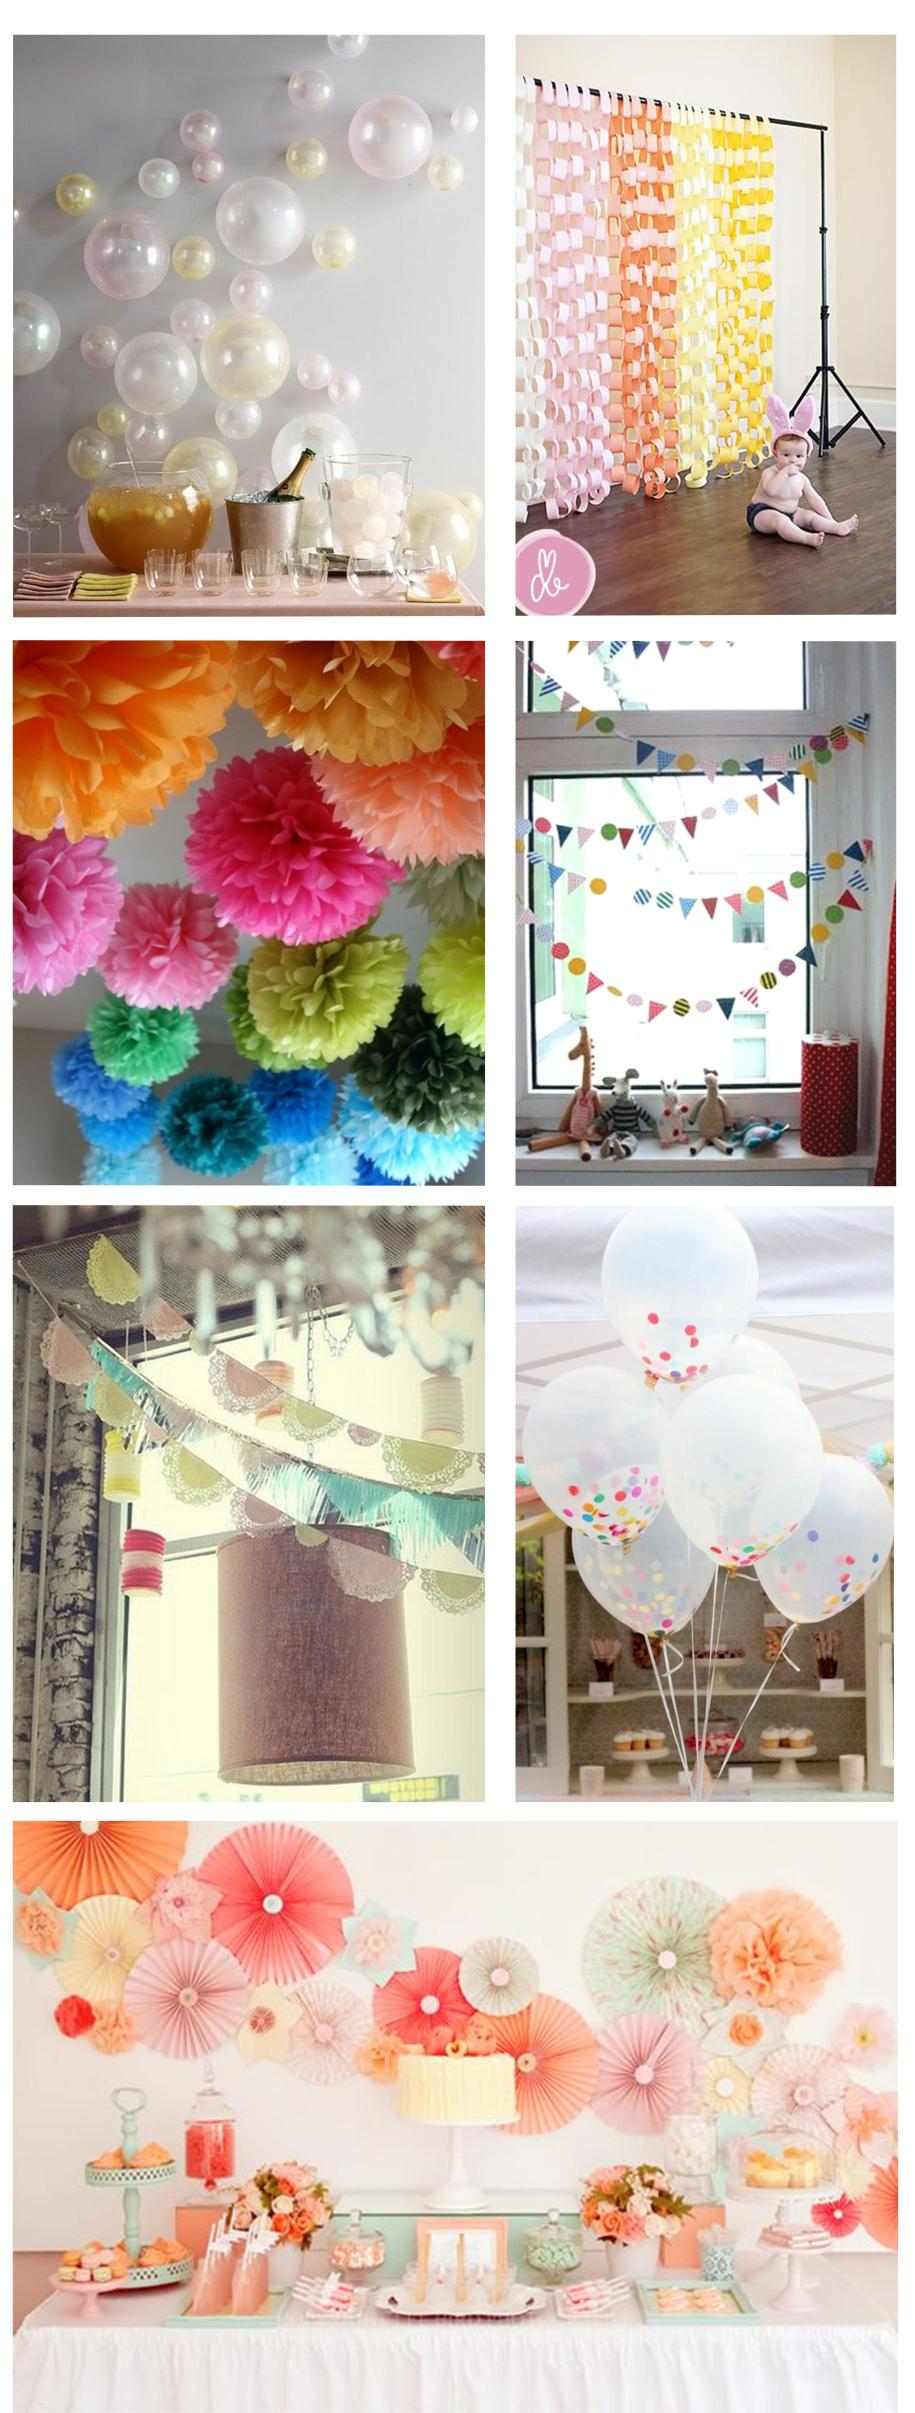 Ideas for home-made party decorations | My Thrifty Life by ...